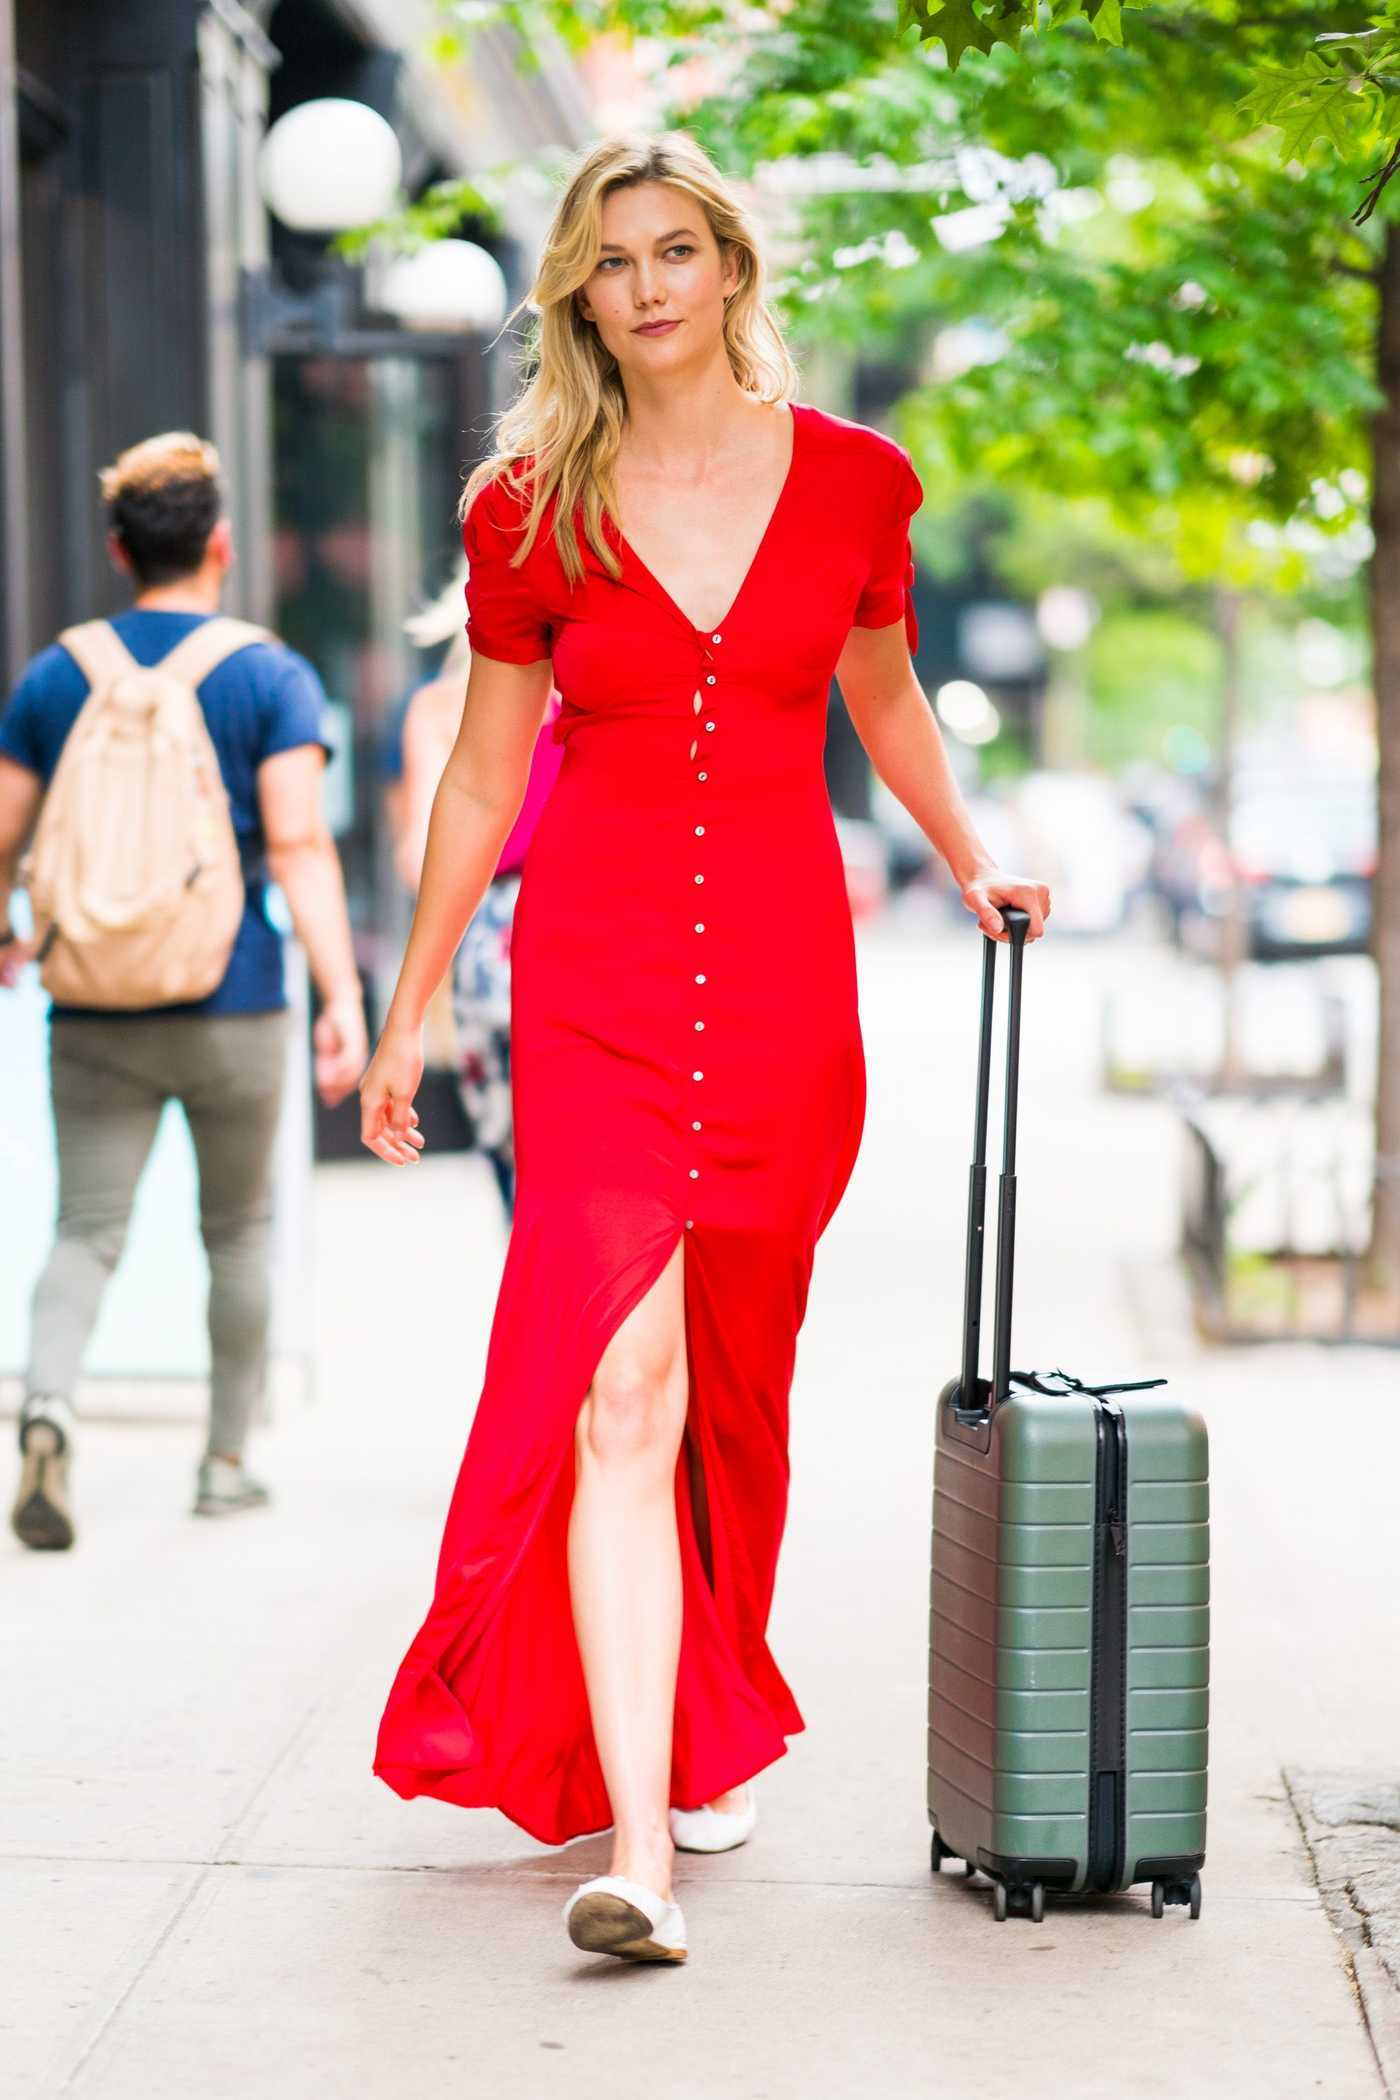 Karlie Kloss Wears a Karlie Kloss X Express Red Dress Out in New York City 07/11/2018